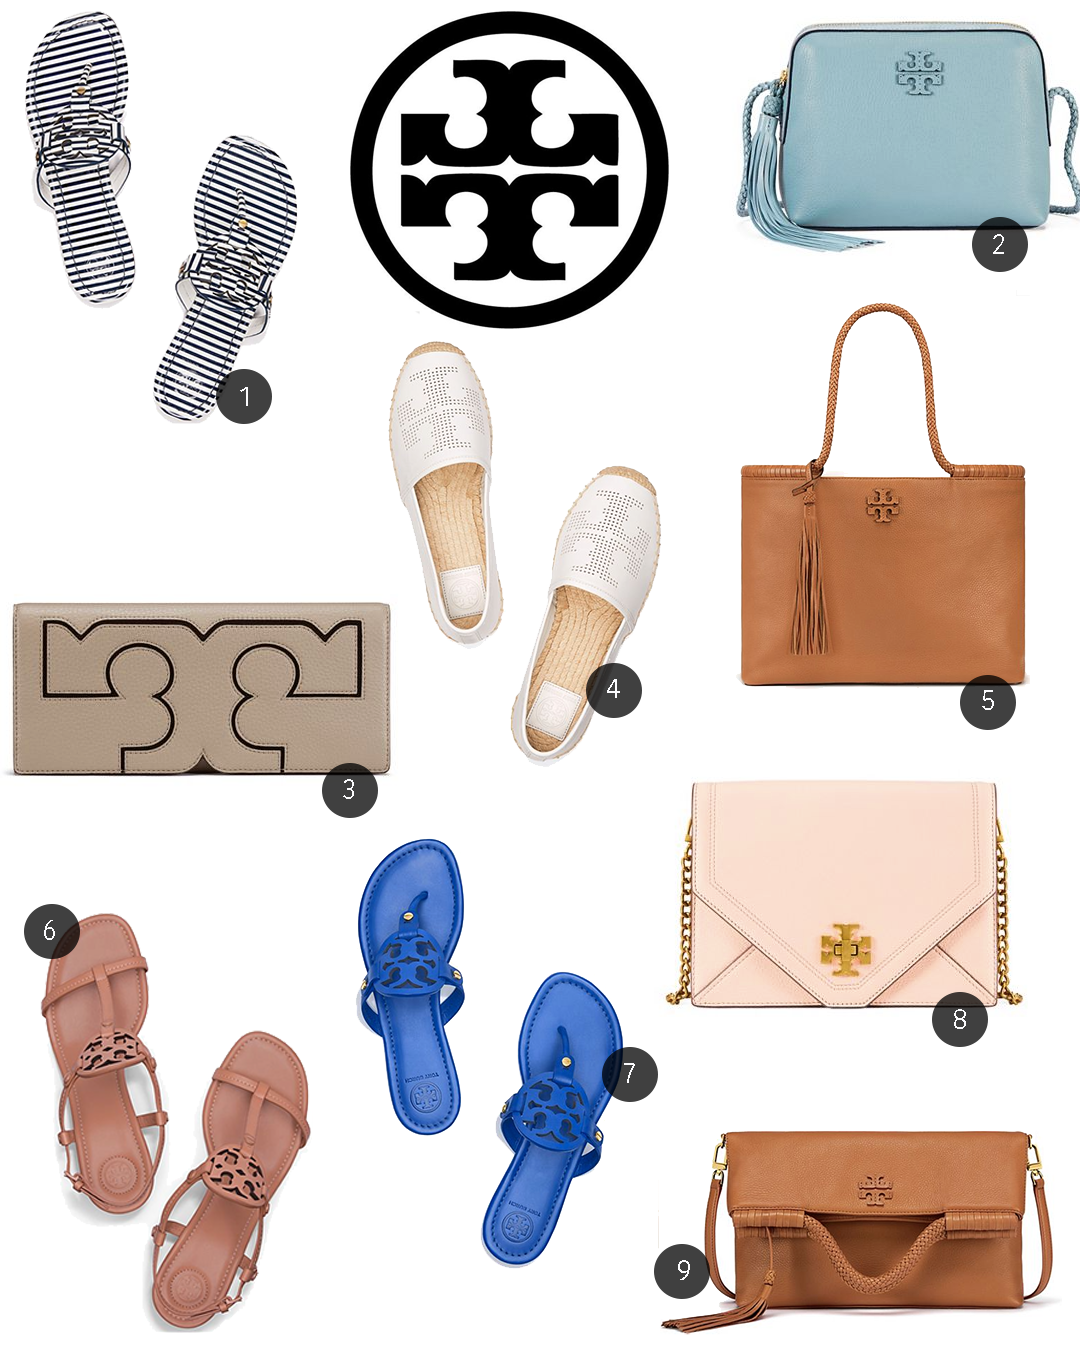 Tory Burch Spring Event Sale Angela Lanter Hello Gorgeous